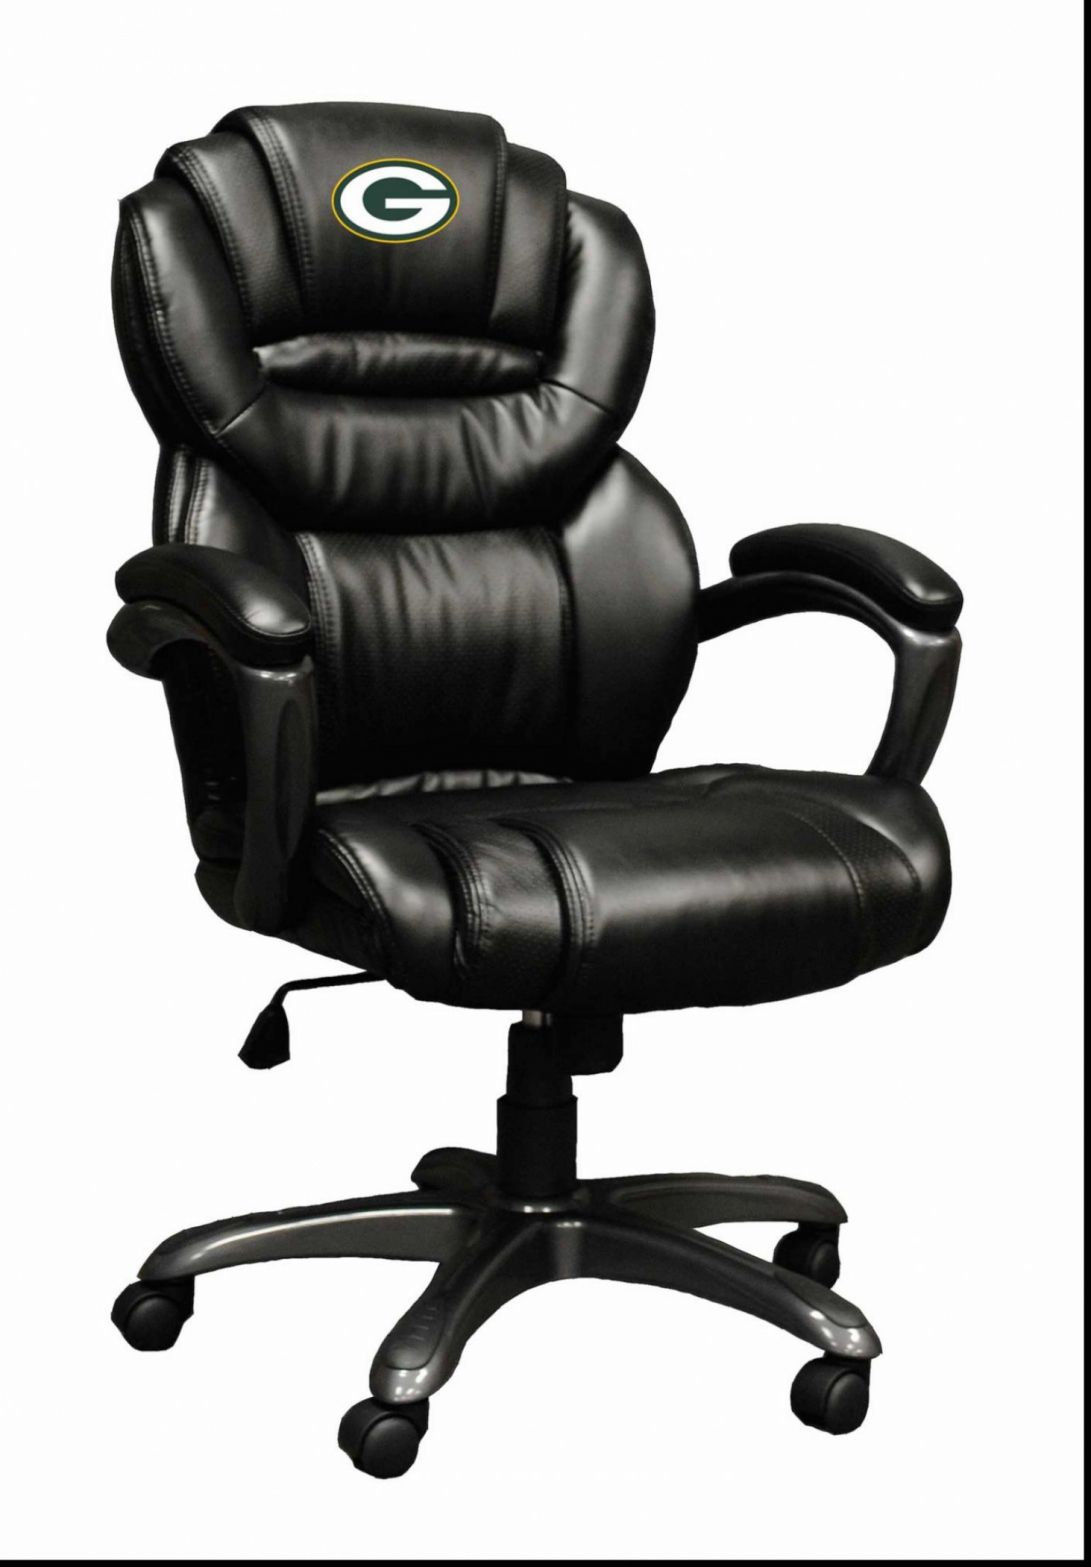 20 Therapeutic Office Chairs Expensive Home Furniture Check More At Http Adidasjrcamp 99 Country Off